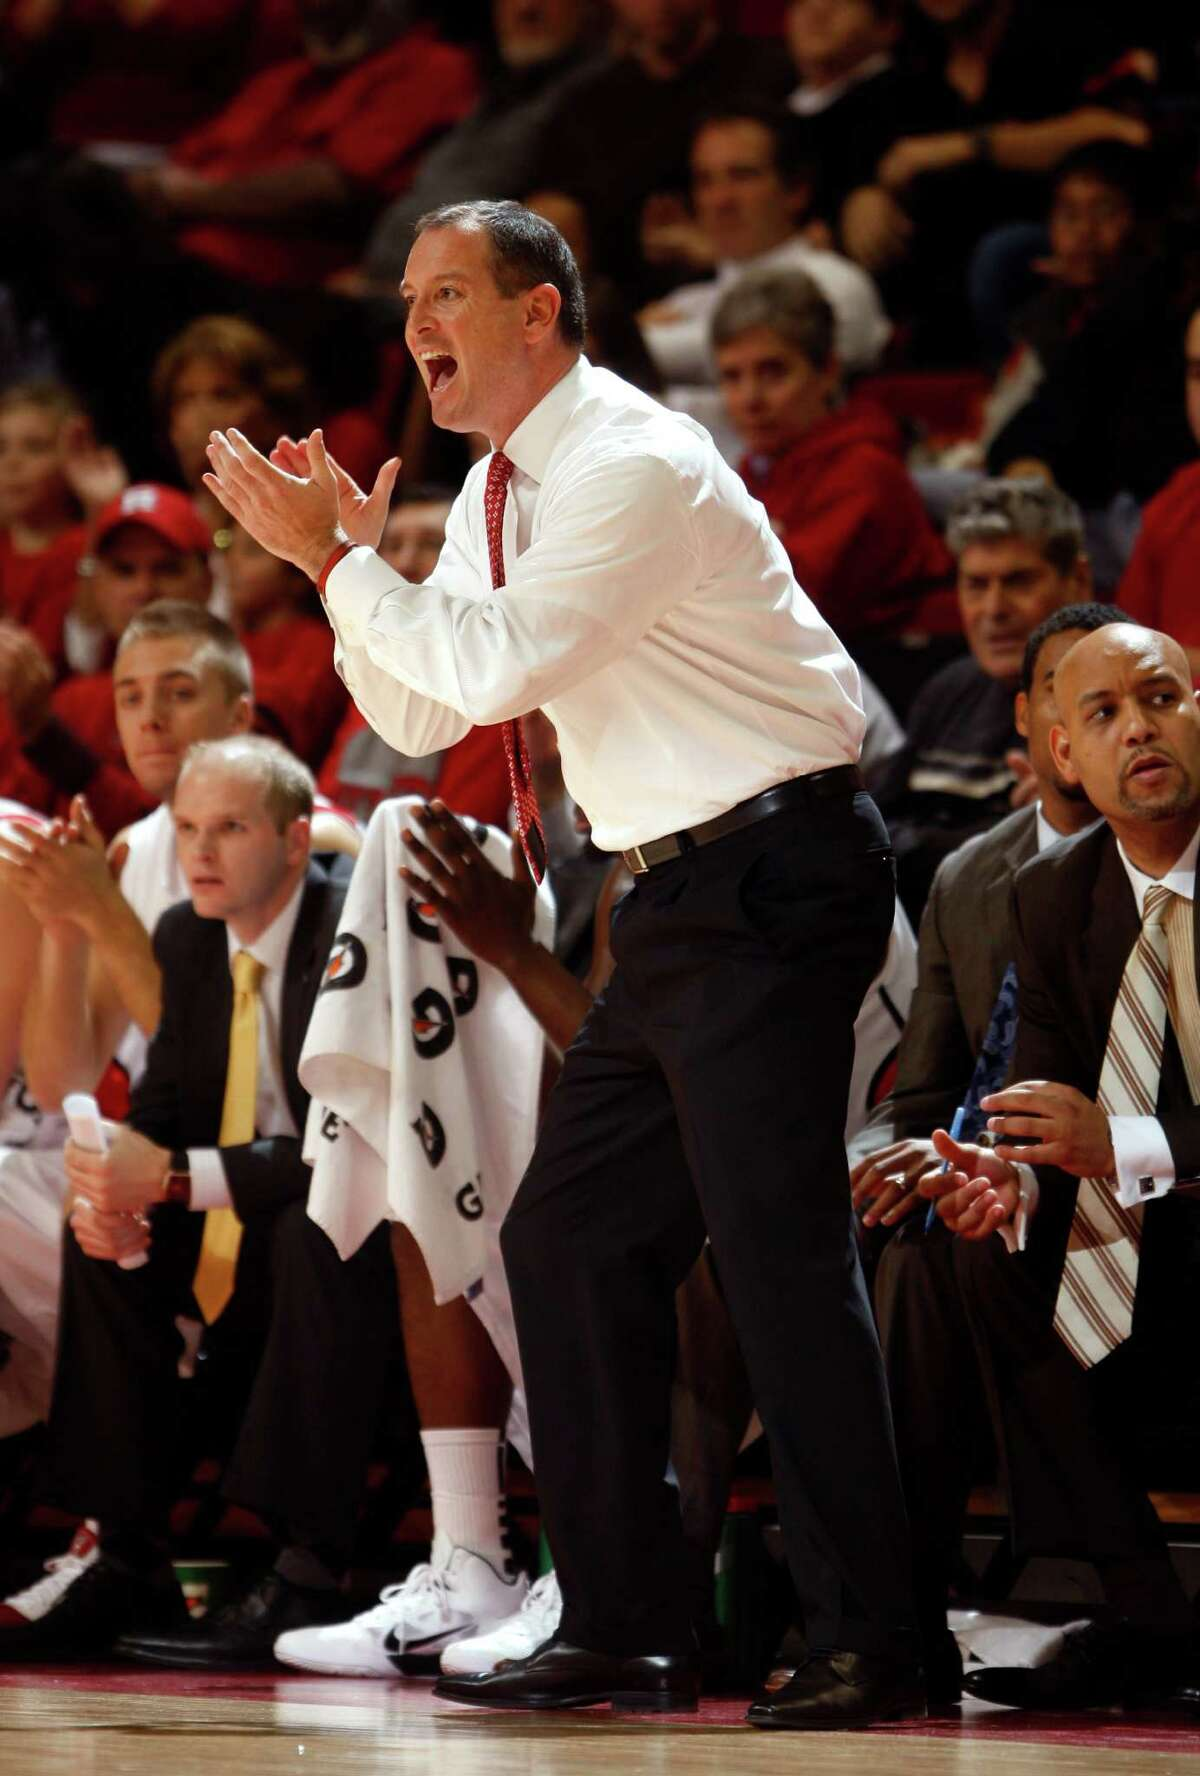 Rutgers Head Coach Mike Rice yells to his players during the first half against Miami at the Rutgers Athletic Center in Piscataway, NJ on 11/21/10. (Frank H. Conlon/For The Star-Ledger) TO PURCHASE THIS PHOTO, CALL THE STAR-LEDGER PHOTO LIBRARY AT 973-392-1530